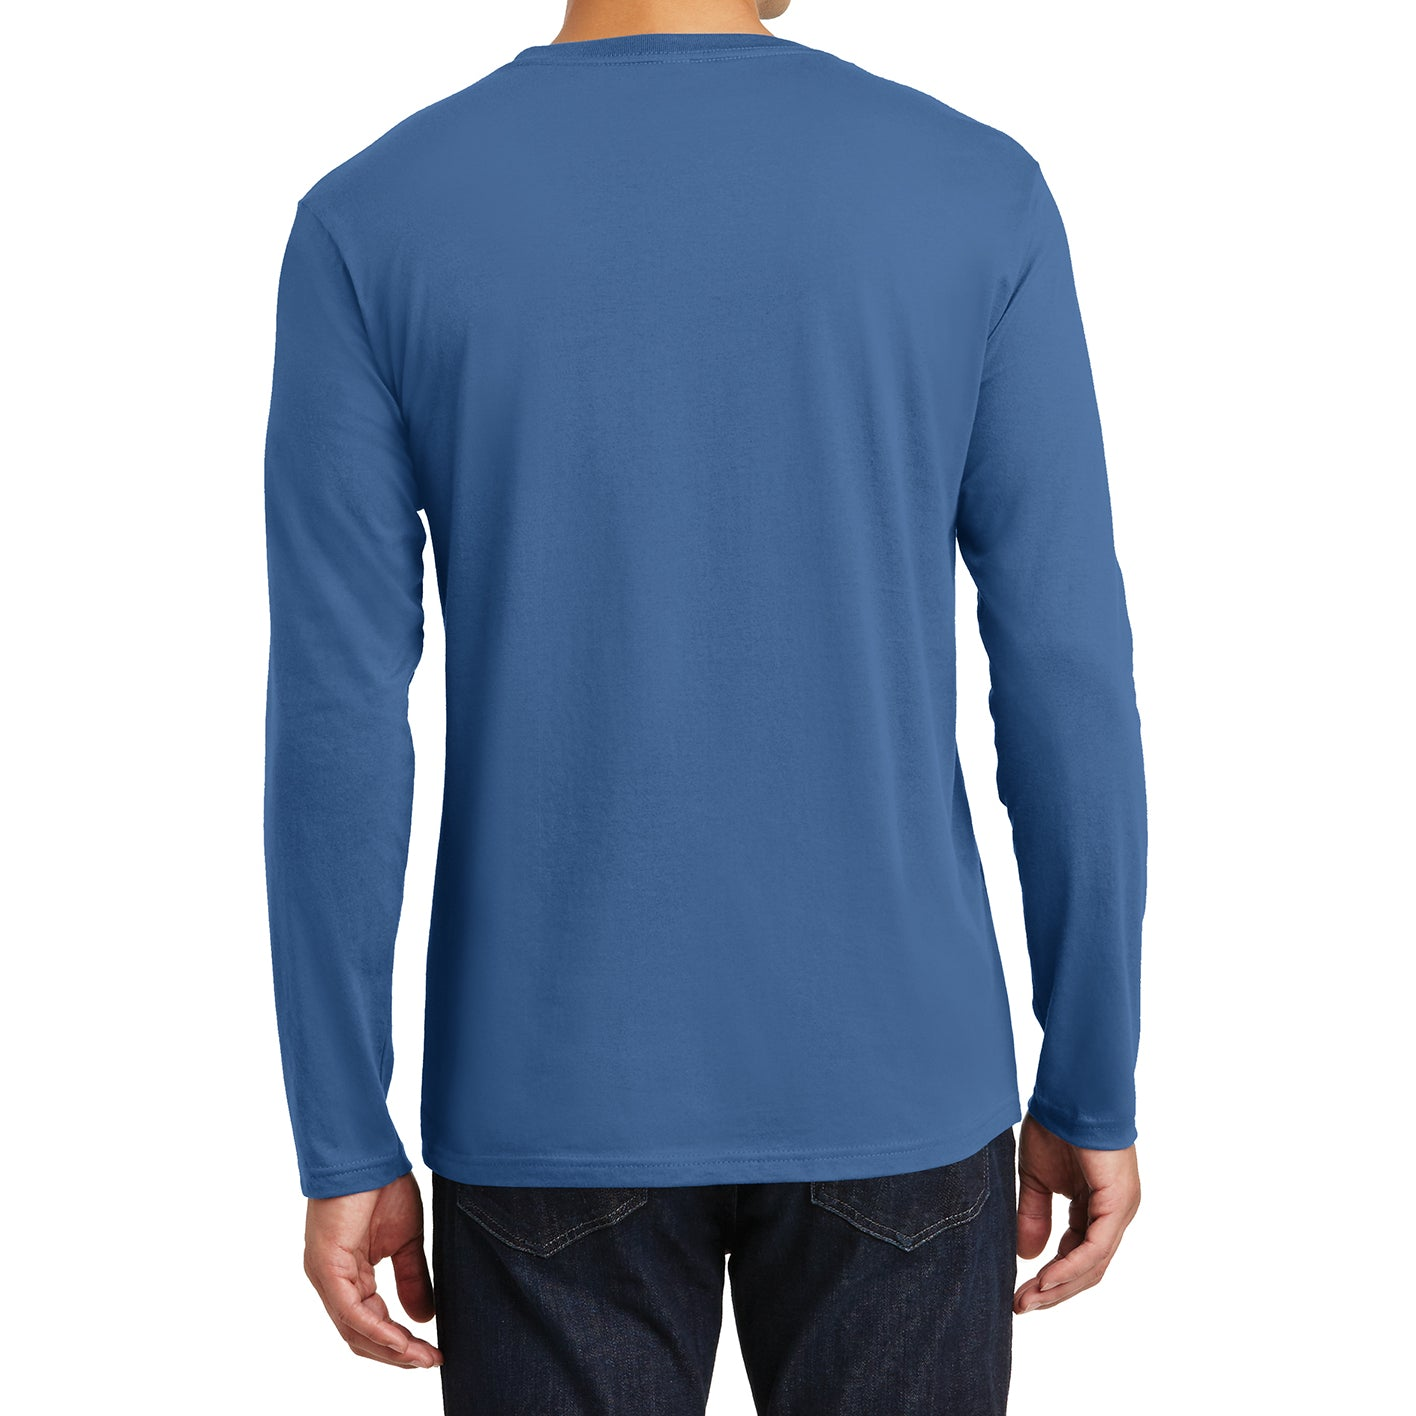 Mens Perfect Weight Long Sleeve Tee - Maritime Blue - Back